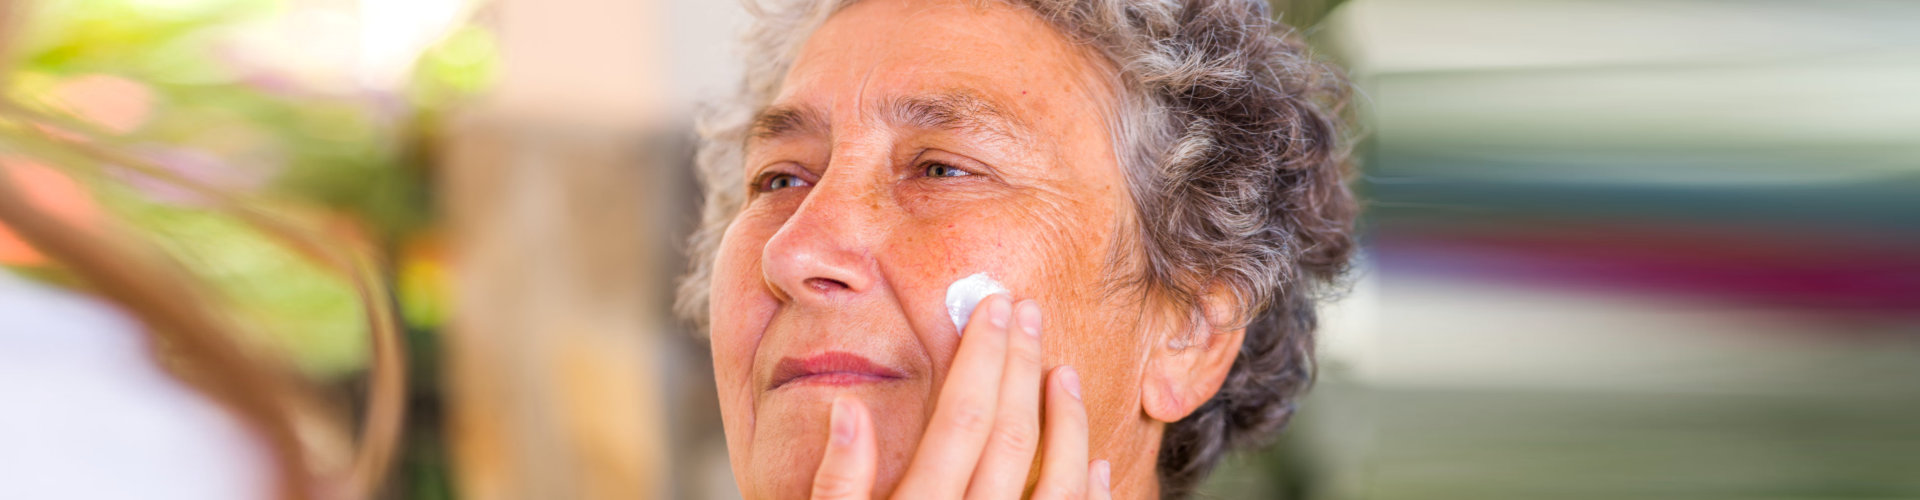 elderly woman face rubbed with cream